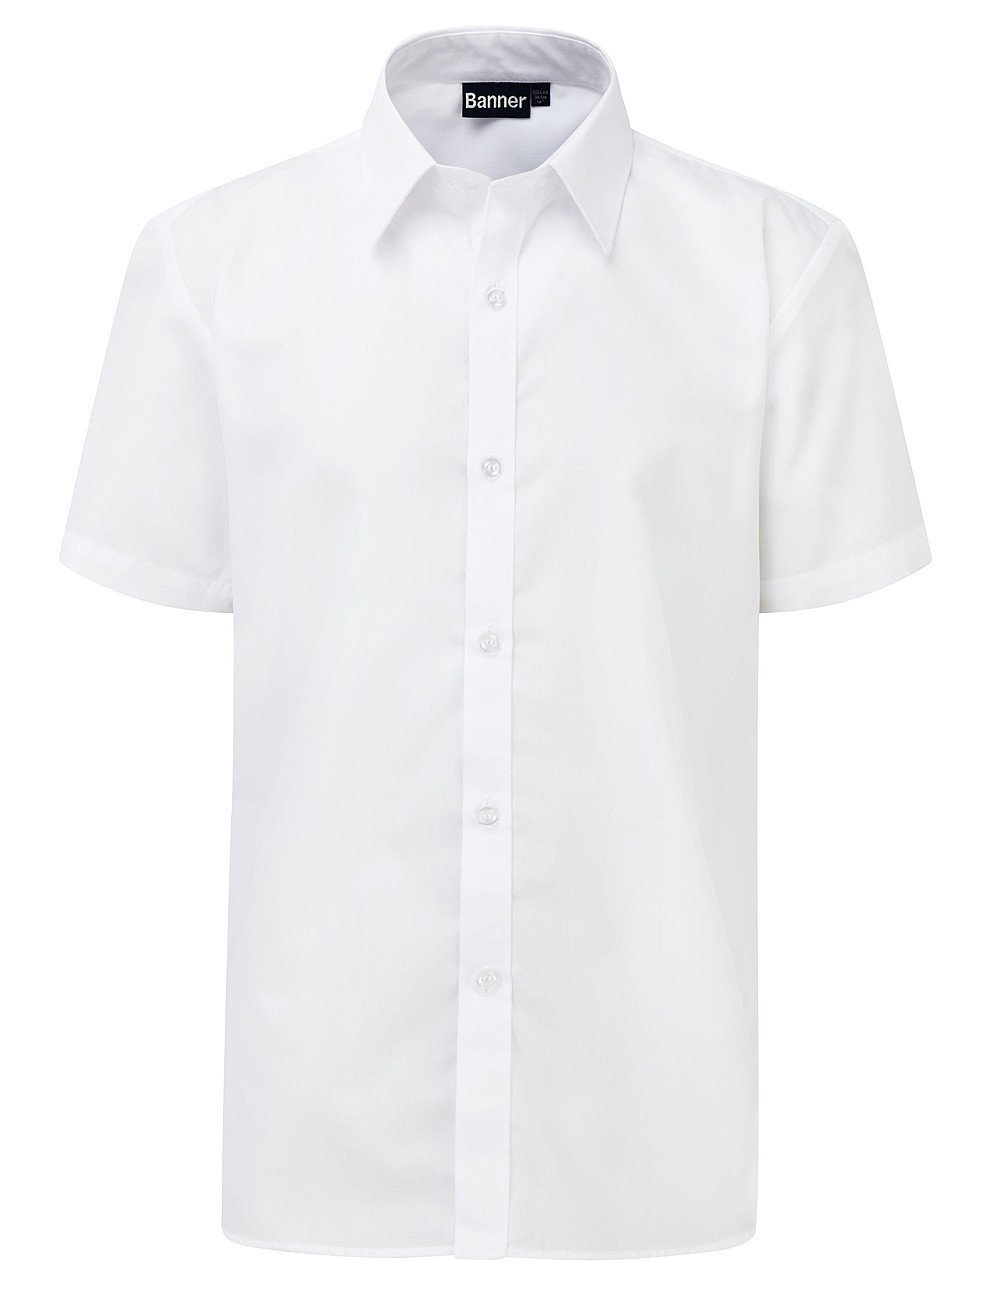 Boys 2pk Slimfit (Short & Long Sleeve) Shirts WHITE /SS / 17H School Uniform Centres Shirts school-uniform-centres.myshopify.com Schoolwear Centres